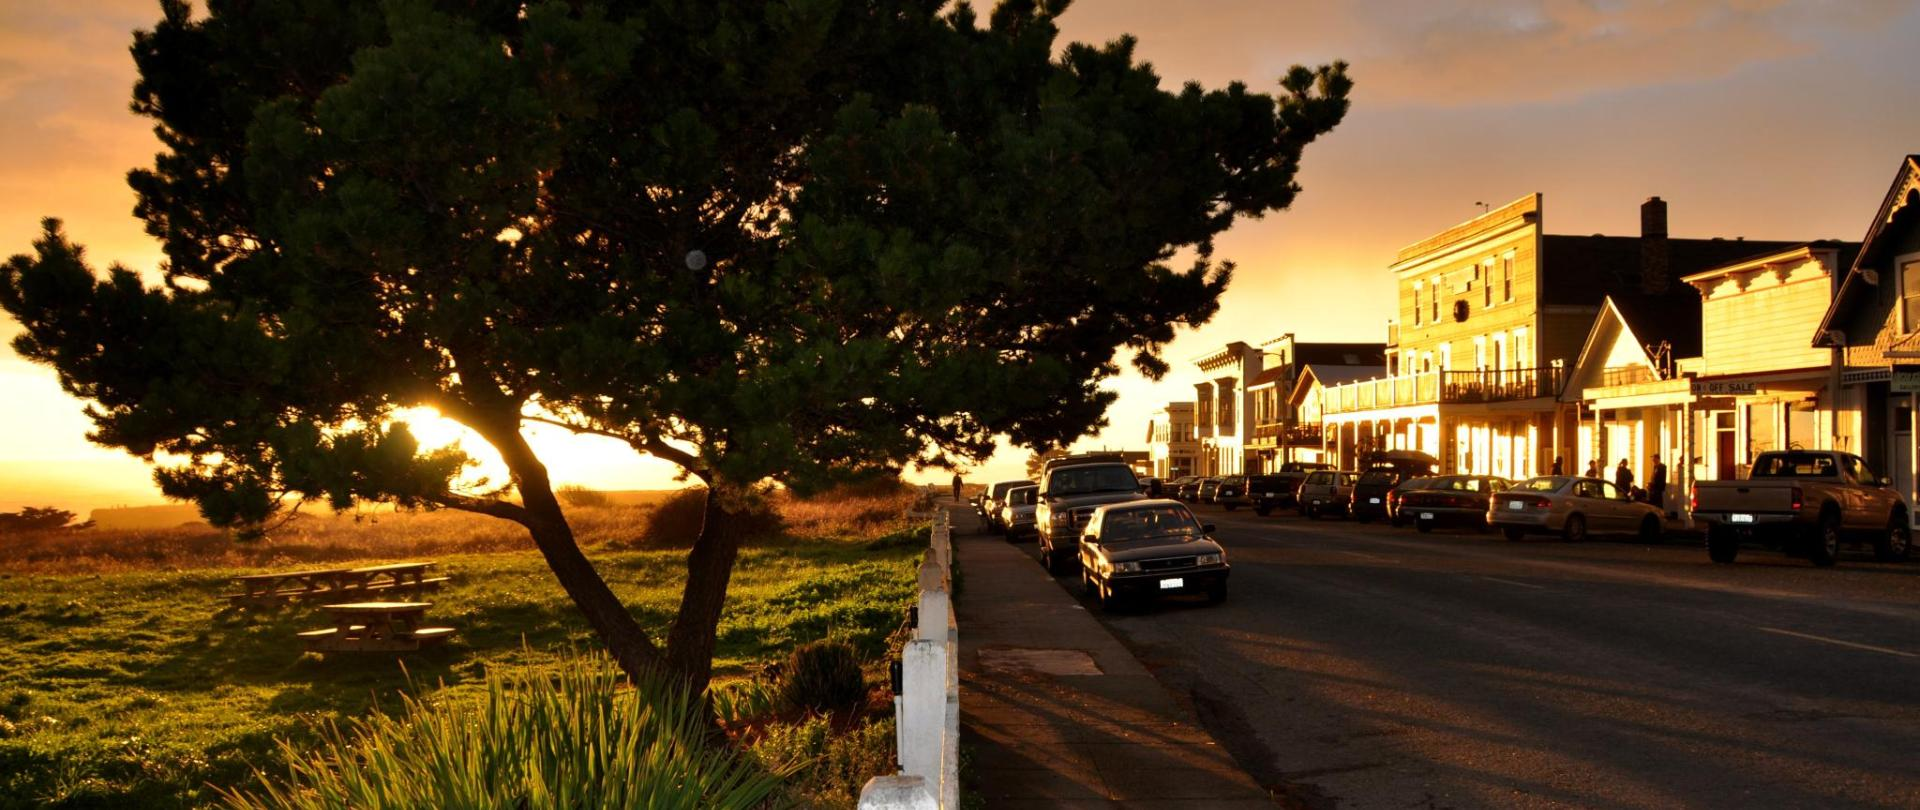 Main Street at Sunset.JPG